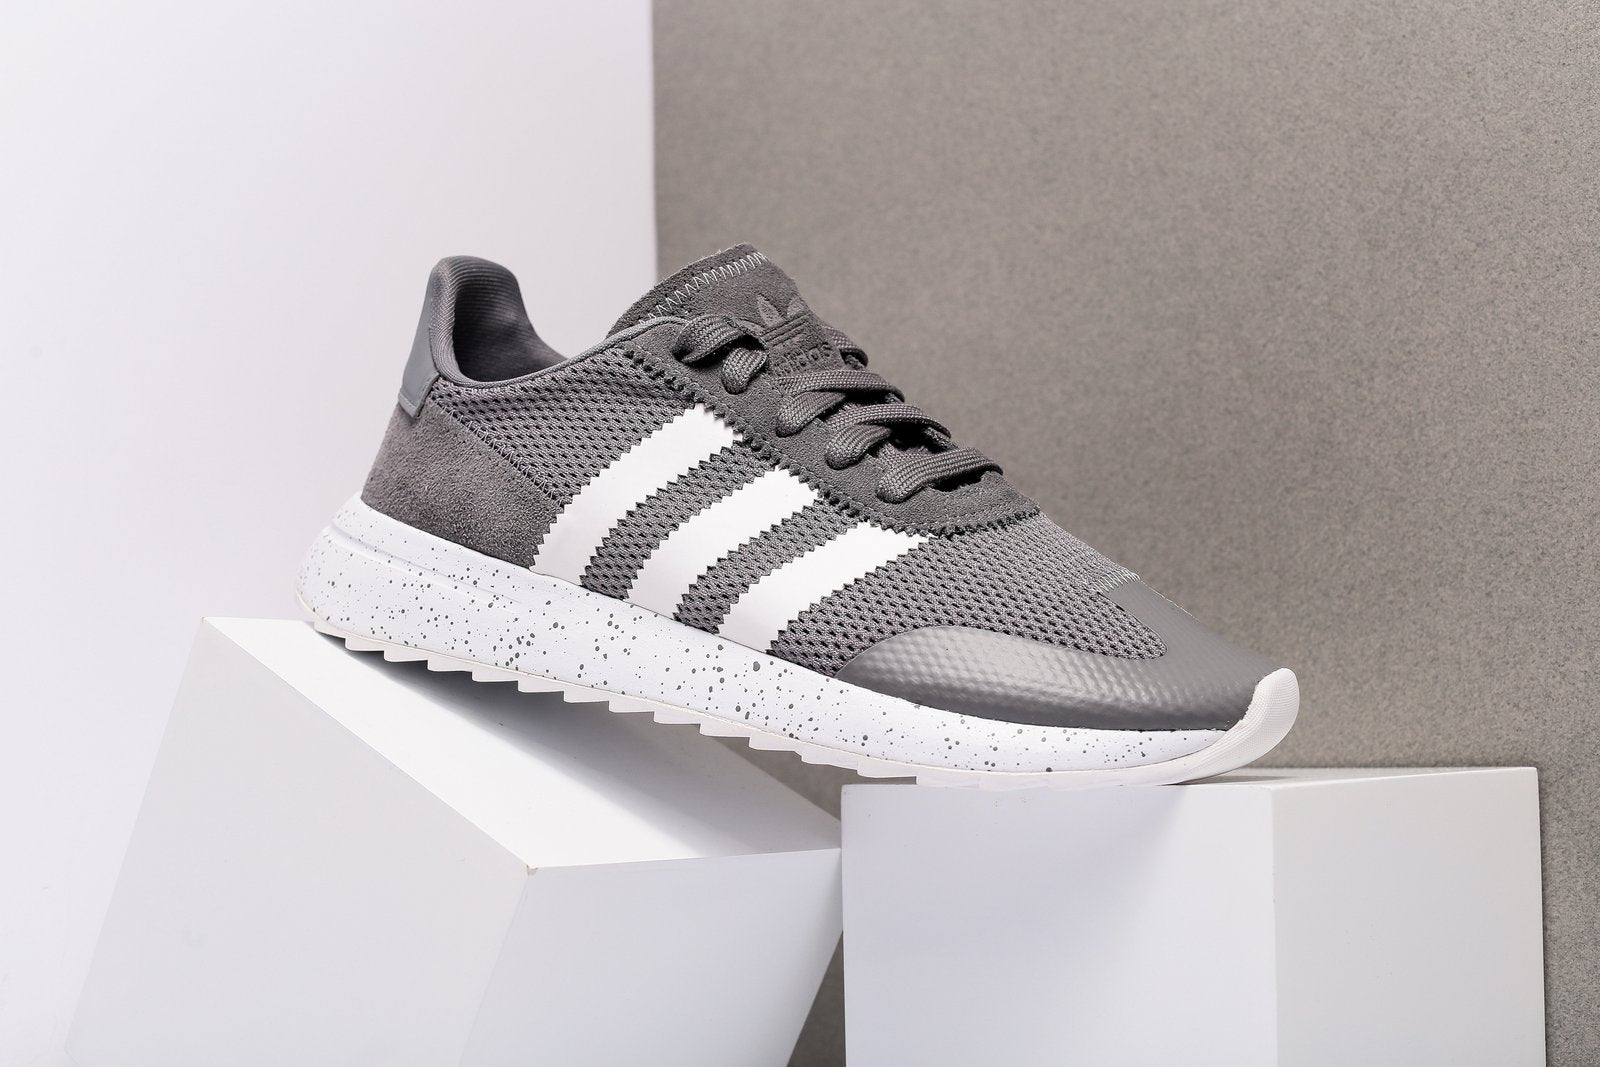 wide range top-rated original 100% authentic ADIDAS FLB RUNNER WOMENS